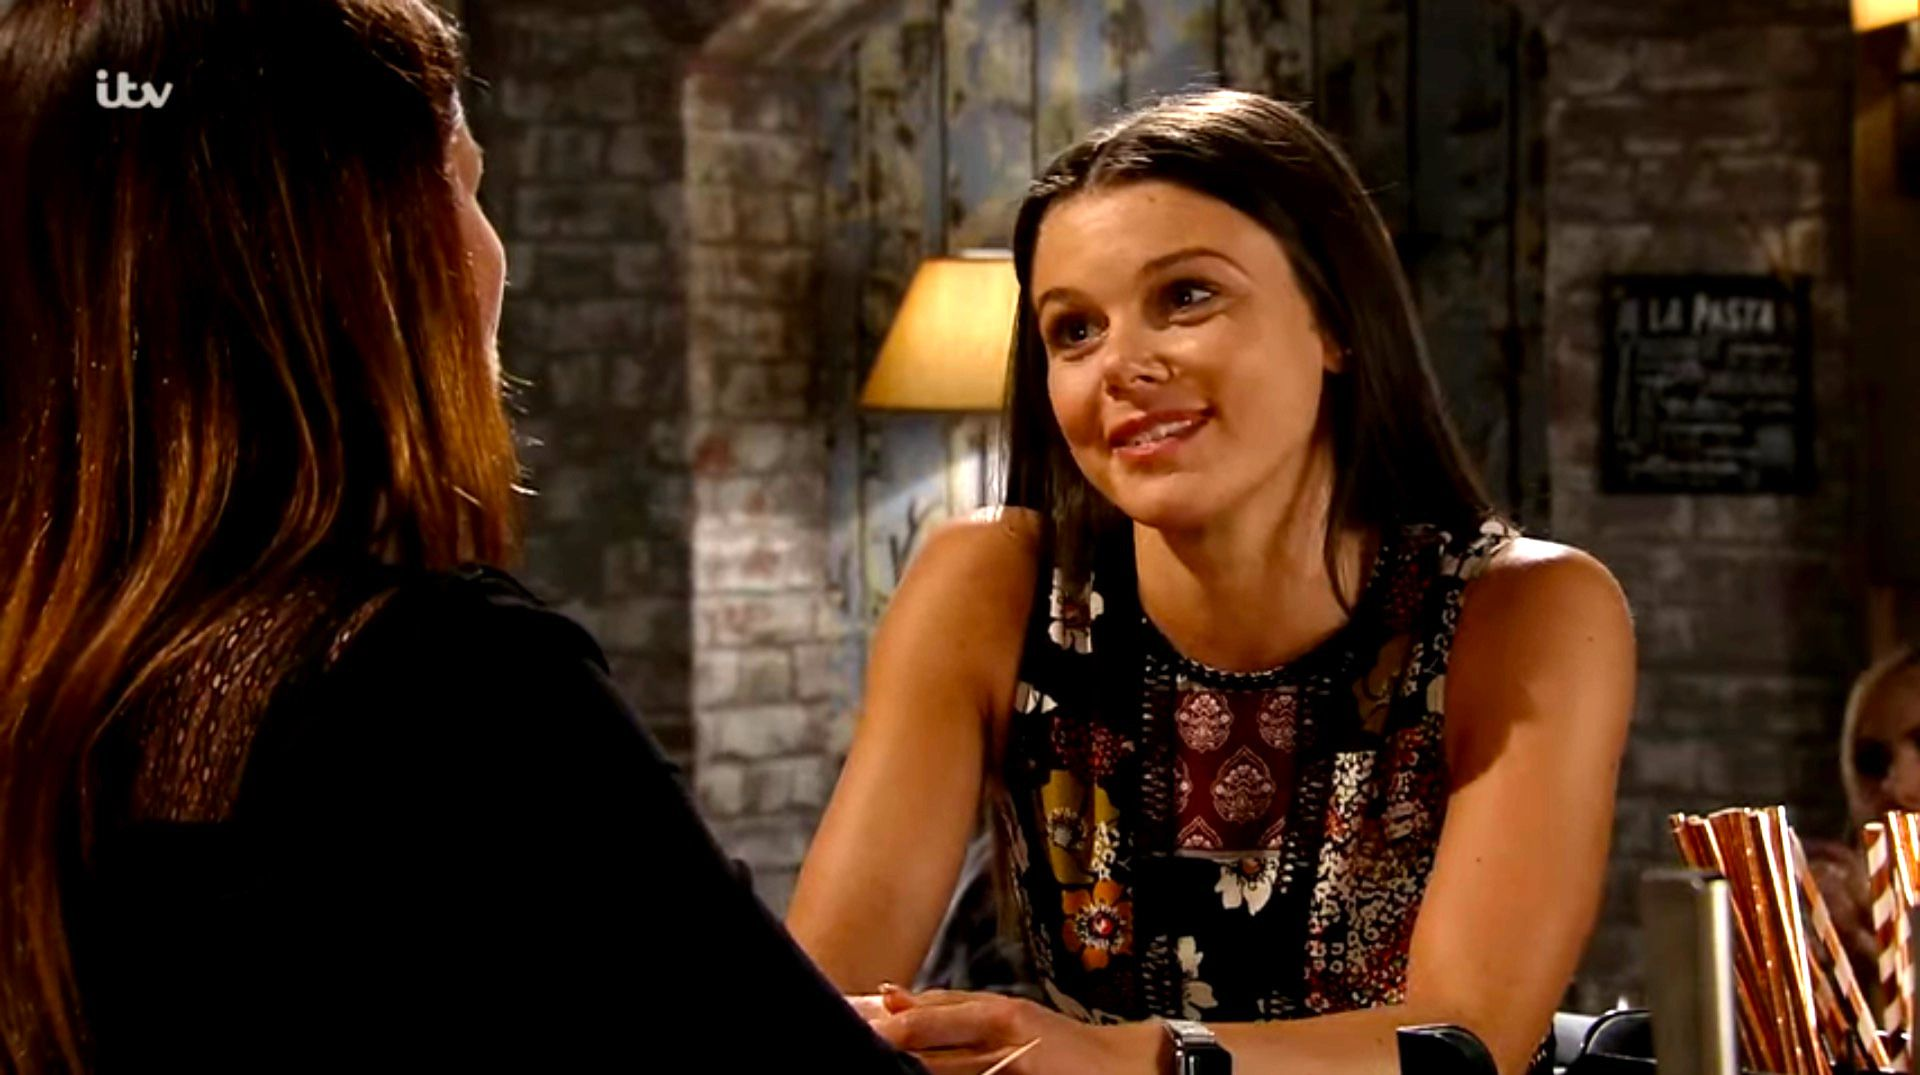 Coronation Street's Kate Connor confides in Carla as she makes plans to leave Weatherfield